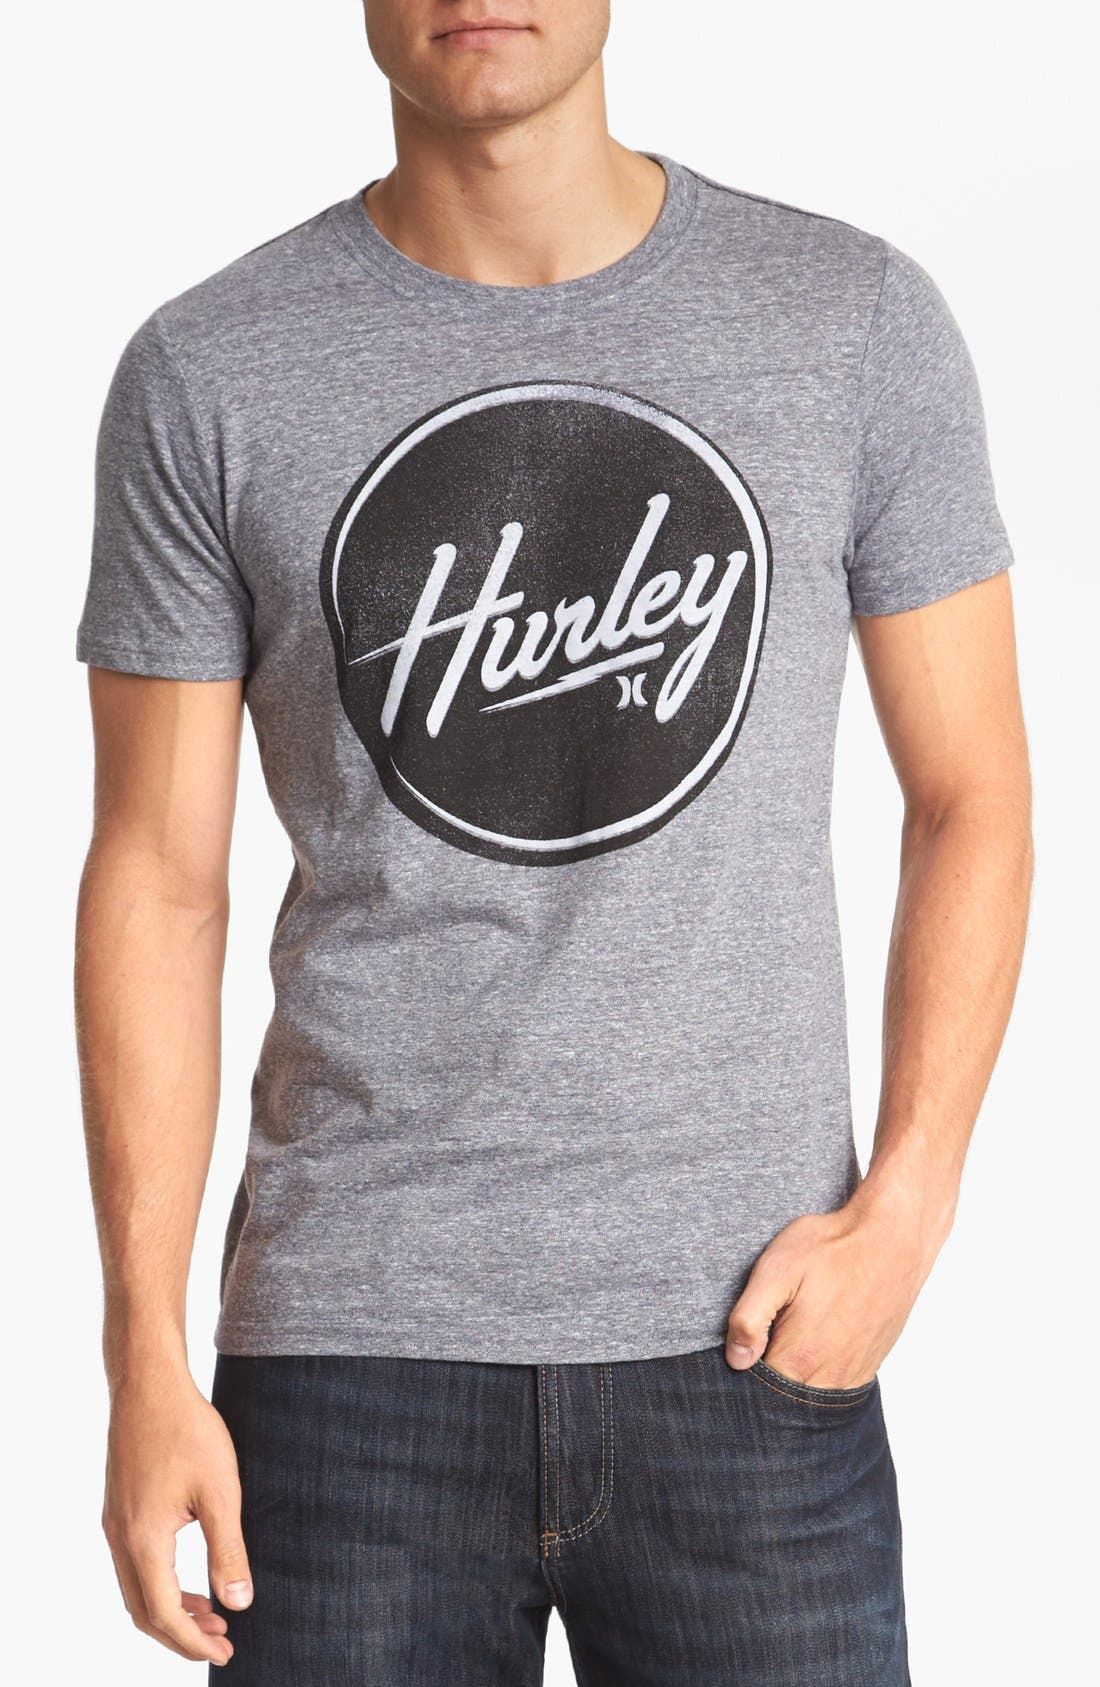 Main Image - Hurley 'Stamped Out' T-Shirt